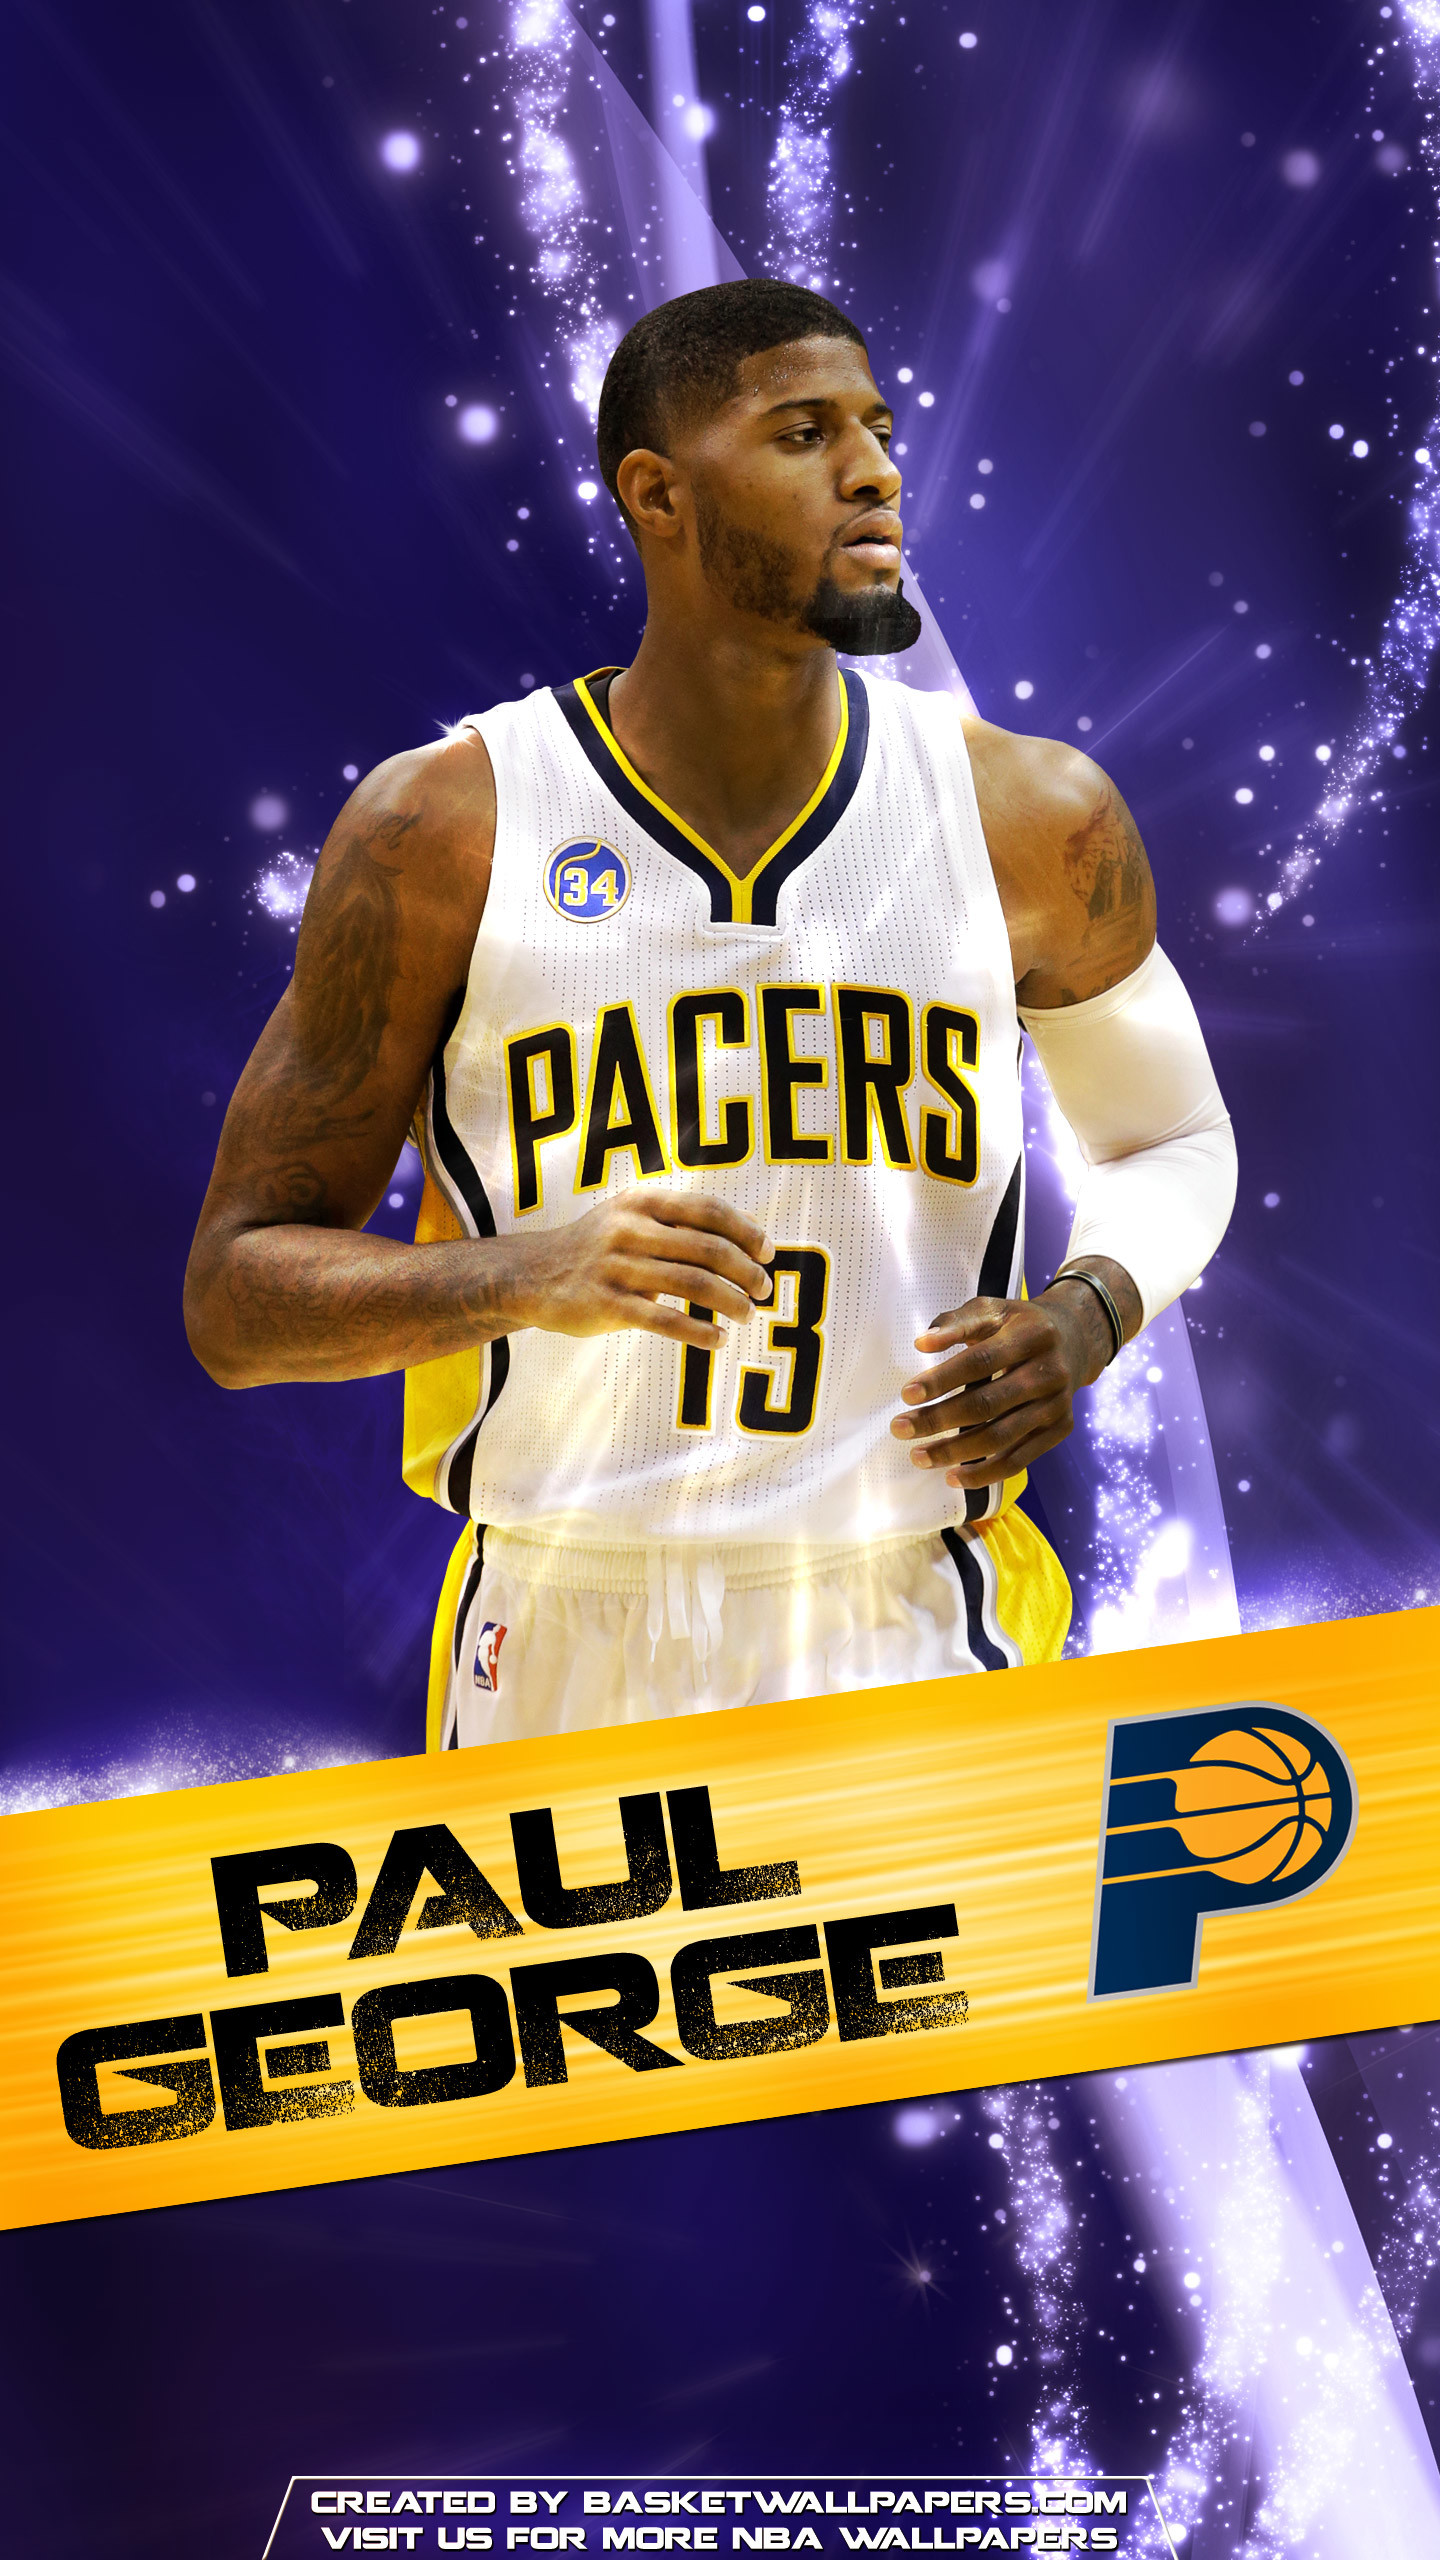 Paul George iPhone Wallpaper (74+ images)